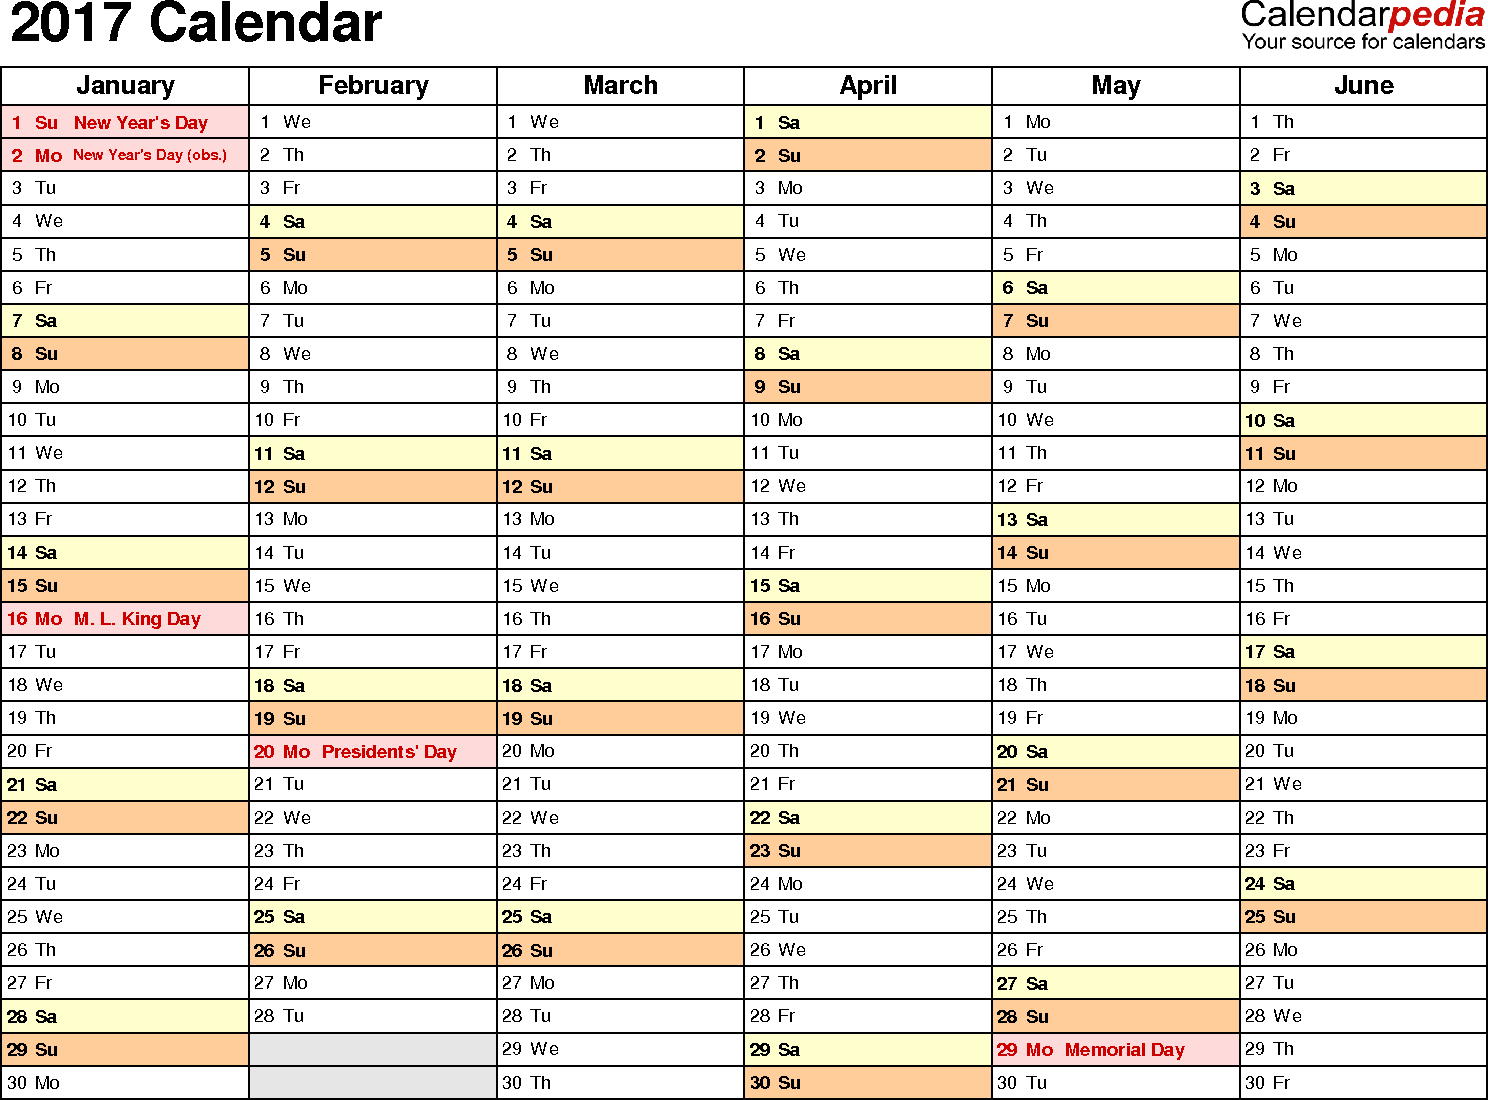 Ediblewildsus  Marvelous  Calendar  Download  Free Printable Excel Templates Xls With Excellent Template   Calendar For Excel Months Horizontally  Pages Landscape Orientation With Beautiful Paste Shortcut Excel Also Excel Saga Manga In Addition How To Convert Rows Into Columns In Excel And Import Data From Excel To Matlab As Well As Excel Unhide Sheets Additionally Creating A Bell Curve In Excel From Calendarpediacom With Ediblewildsus  Excellent  Calendar  Download  Free Printable Excel Templates Xls With Beautiful Template   Calendar For Excel Months Horizontally  Pages Landscape Orientation And Marvelous Paste Shortcut Excel Also Excel Saga Manga In Addition How To Convert Rows Into Columns In Excel From Calendarpediacom